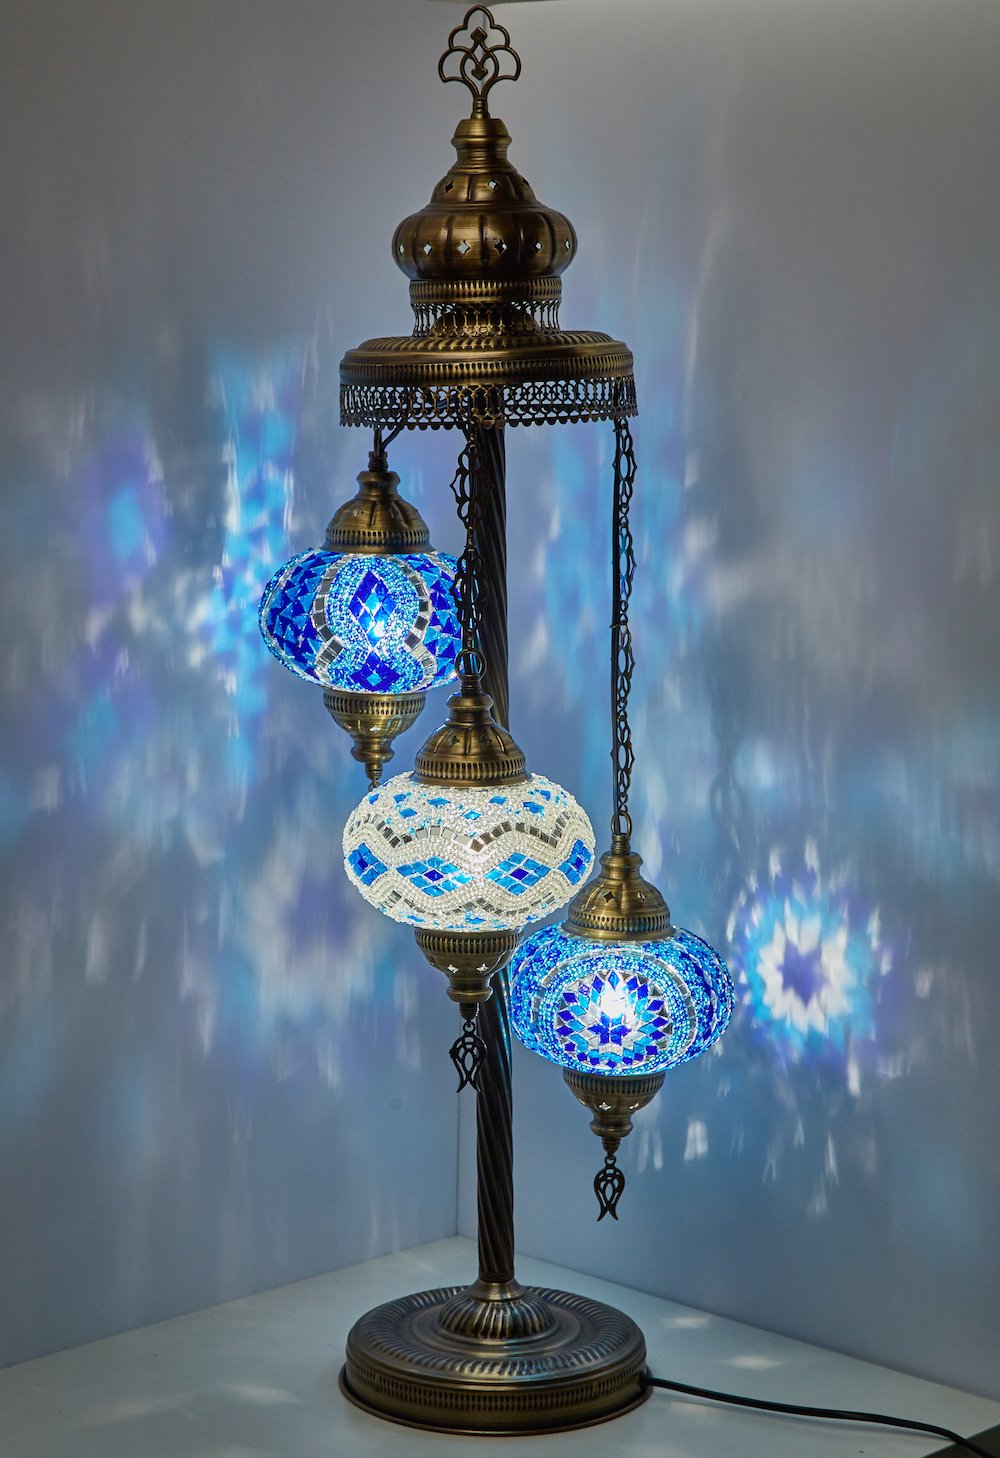 Turkish moroccan mosaic glass handmade tiffany floor lamp light 29 5 multicolor amazon com